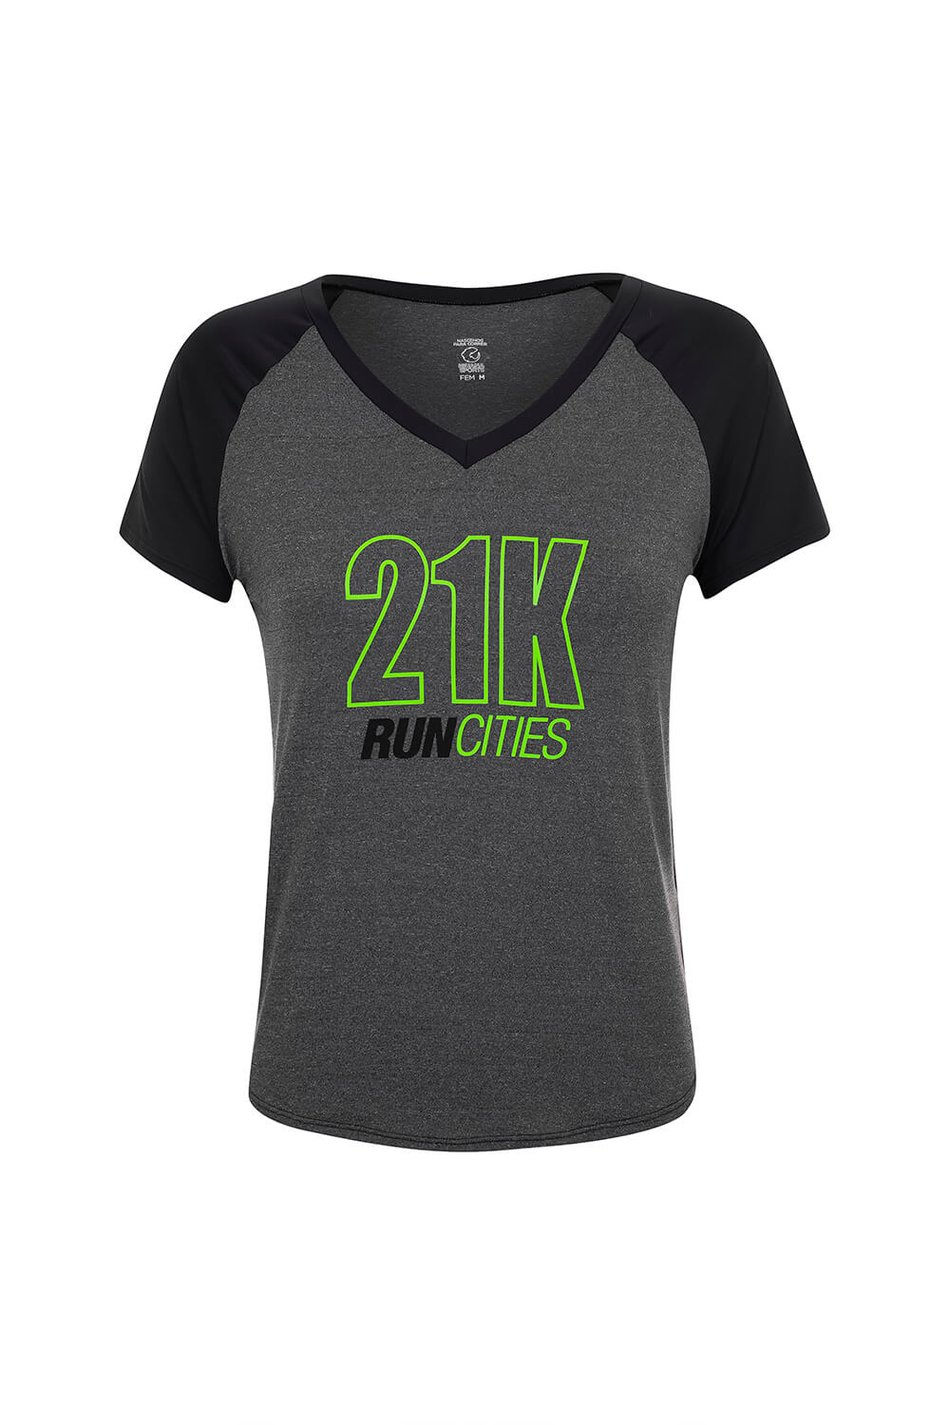 Camiseta 21k Run Cities Mescla e Preta Fem